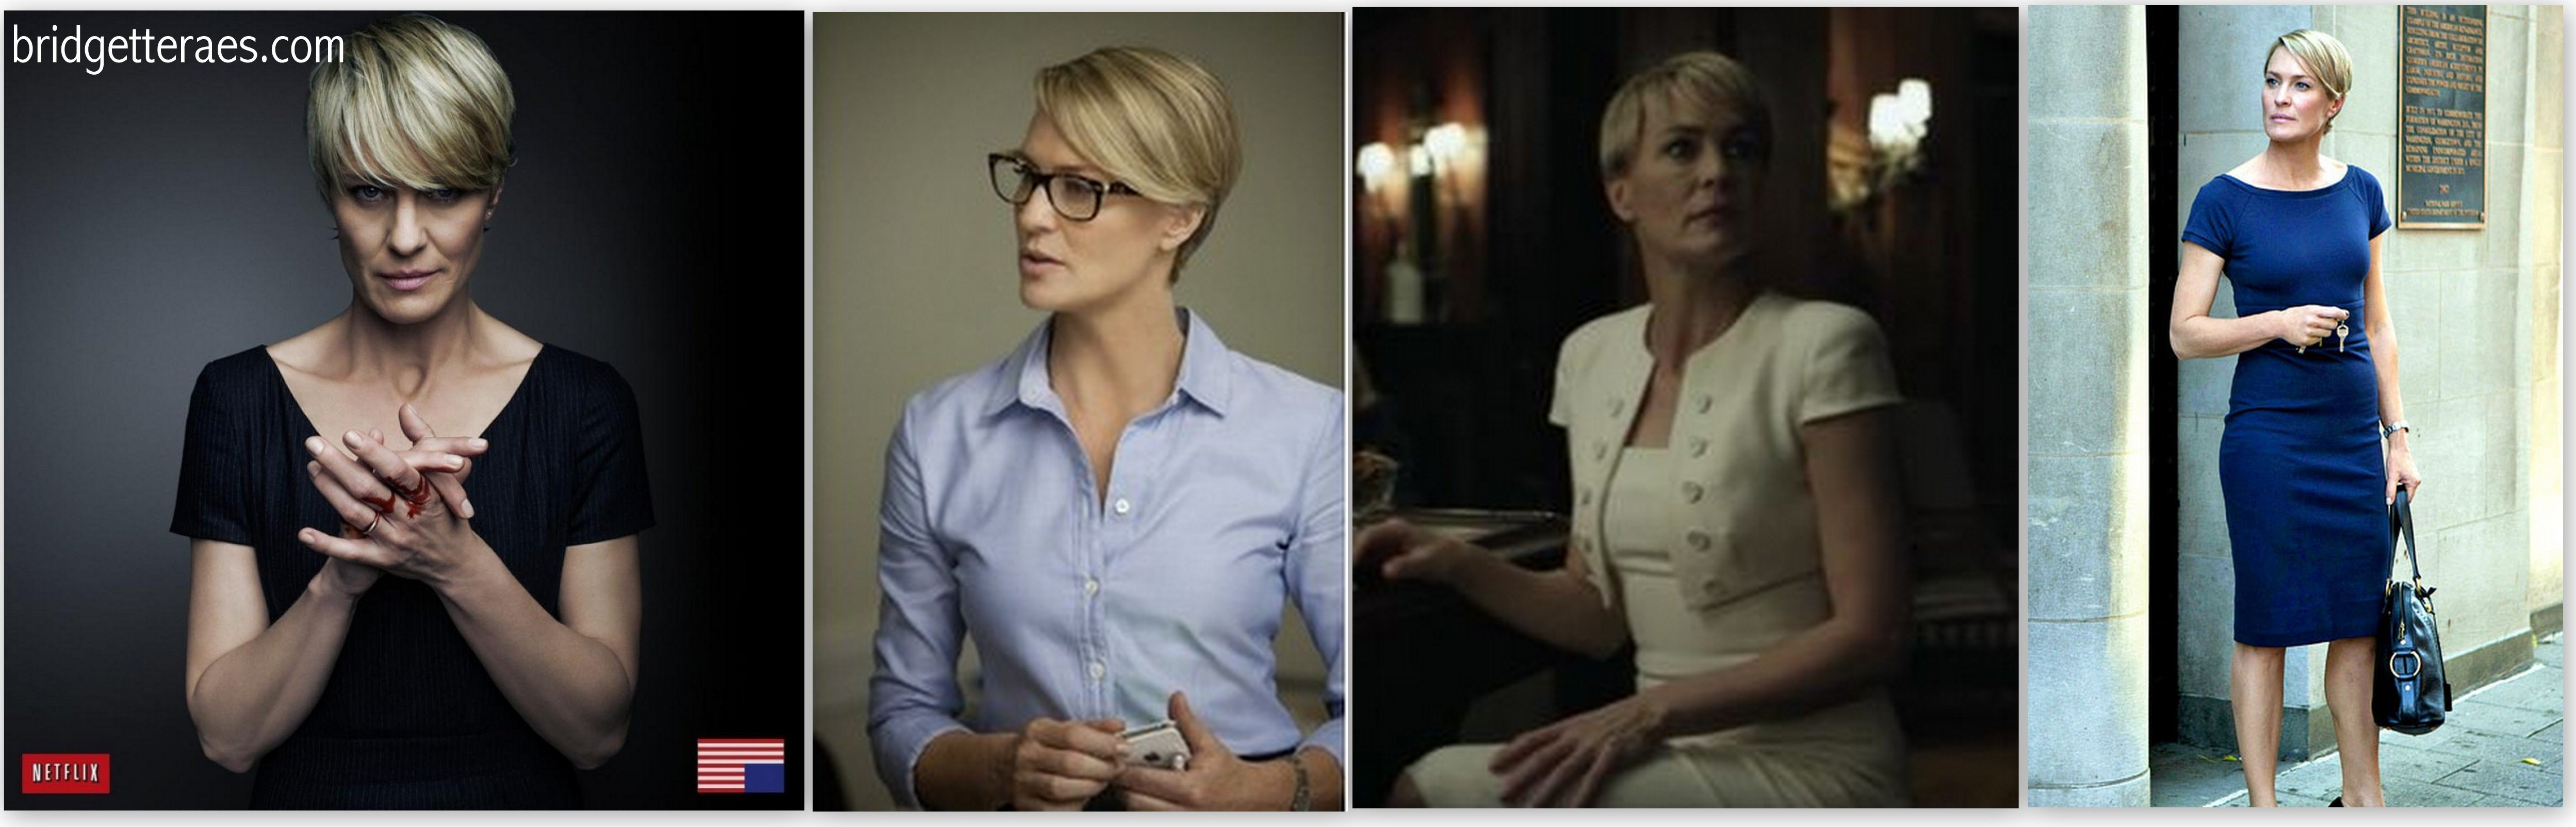 How to Get Claire Underwood Style Without Losing Your Moral Compass